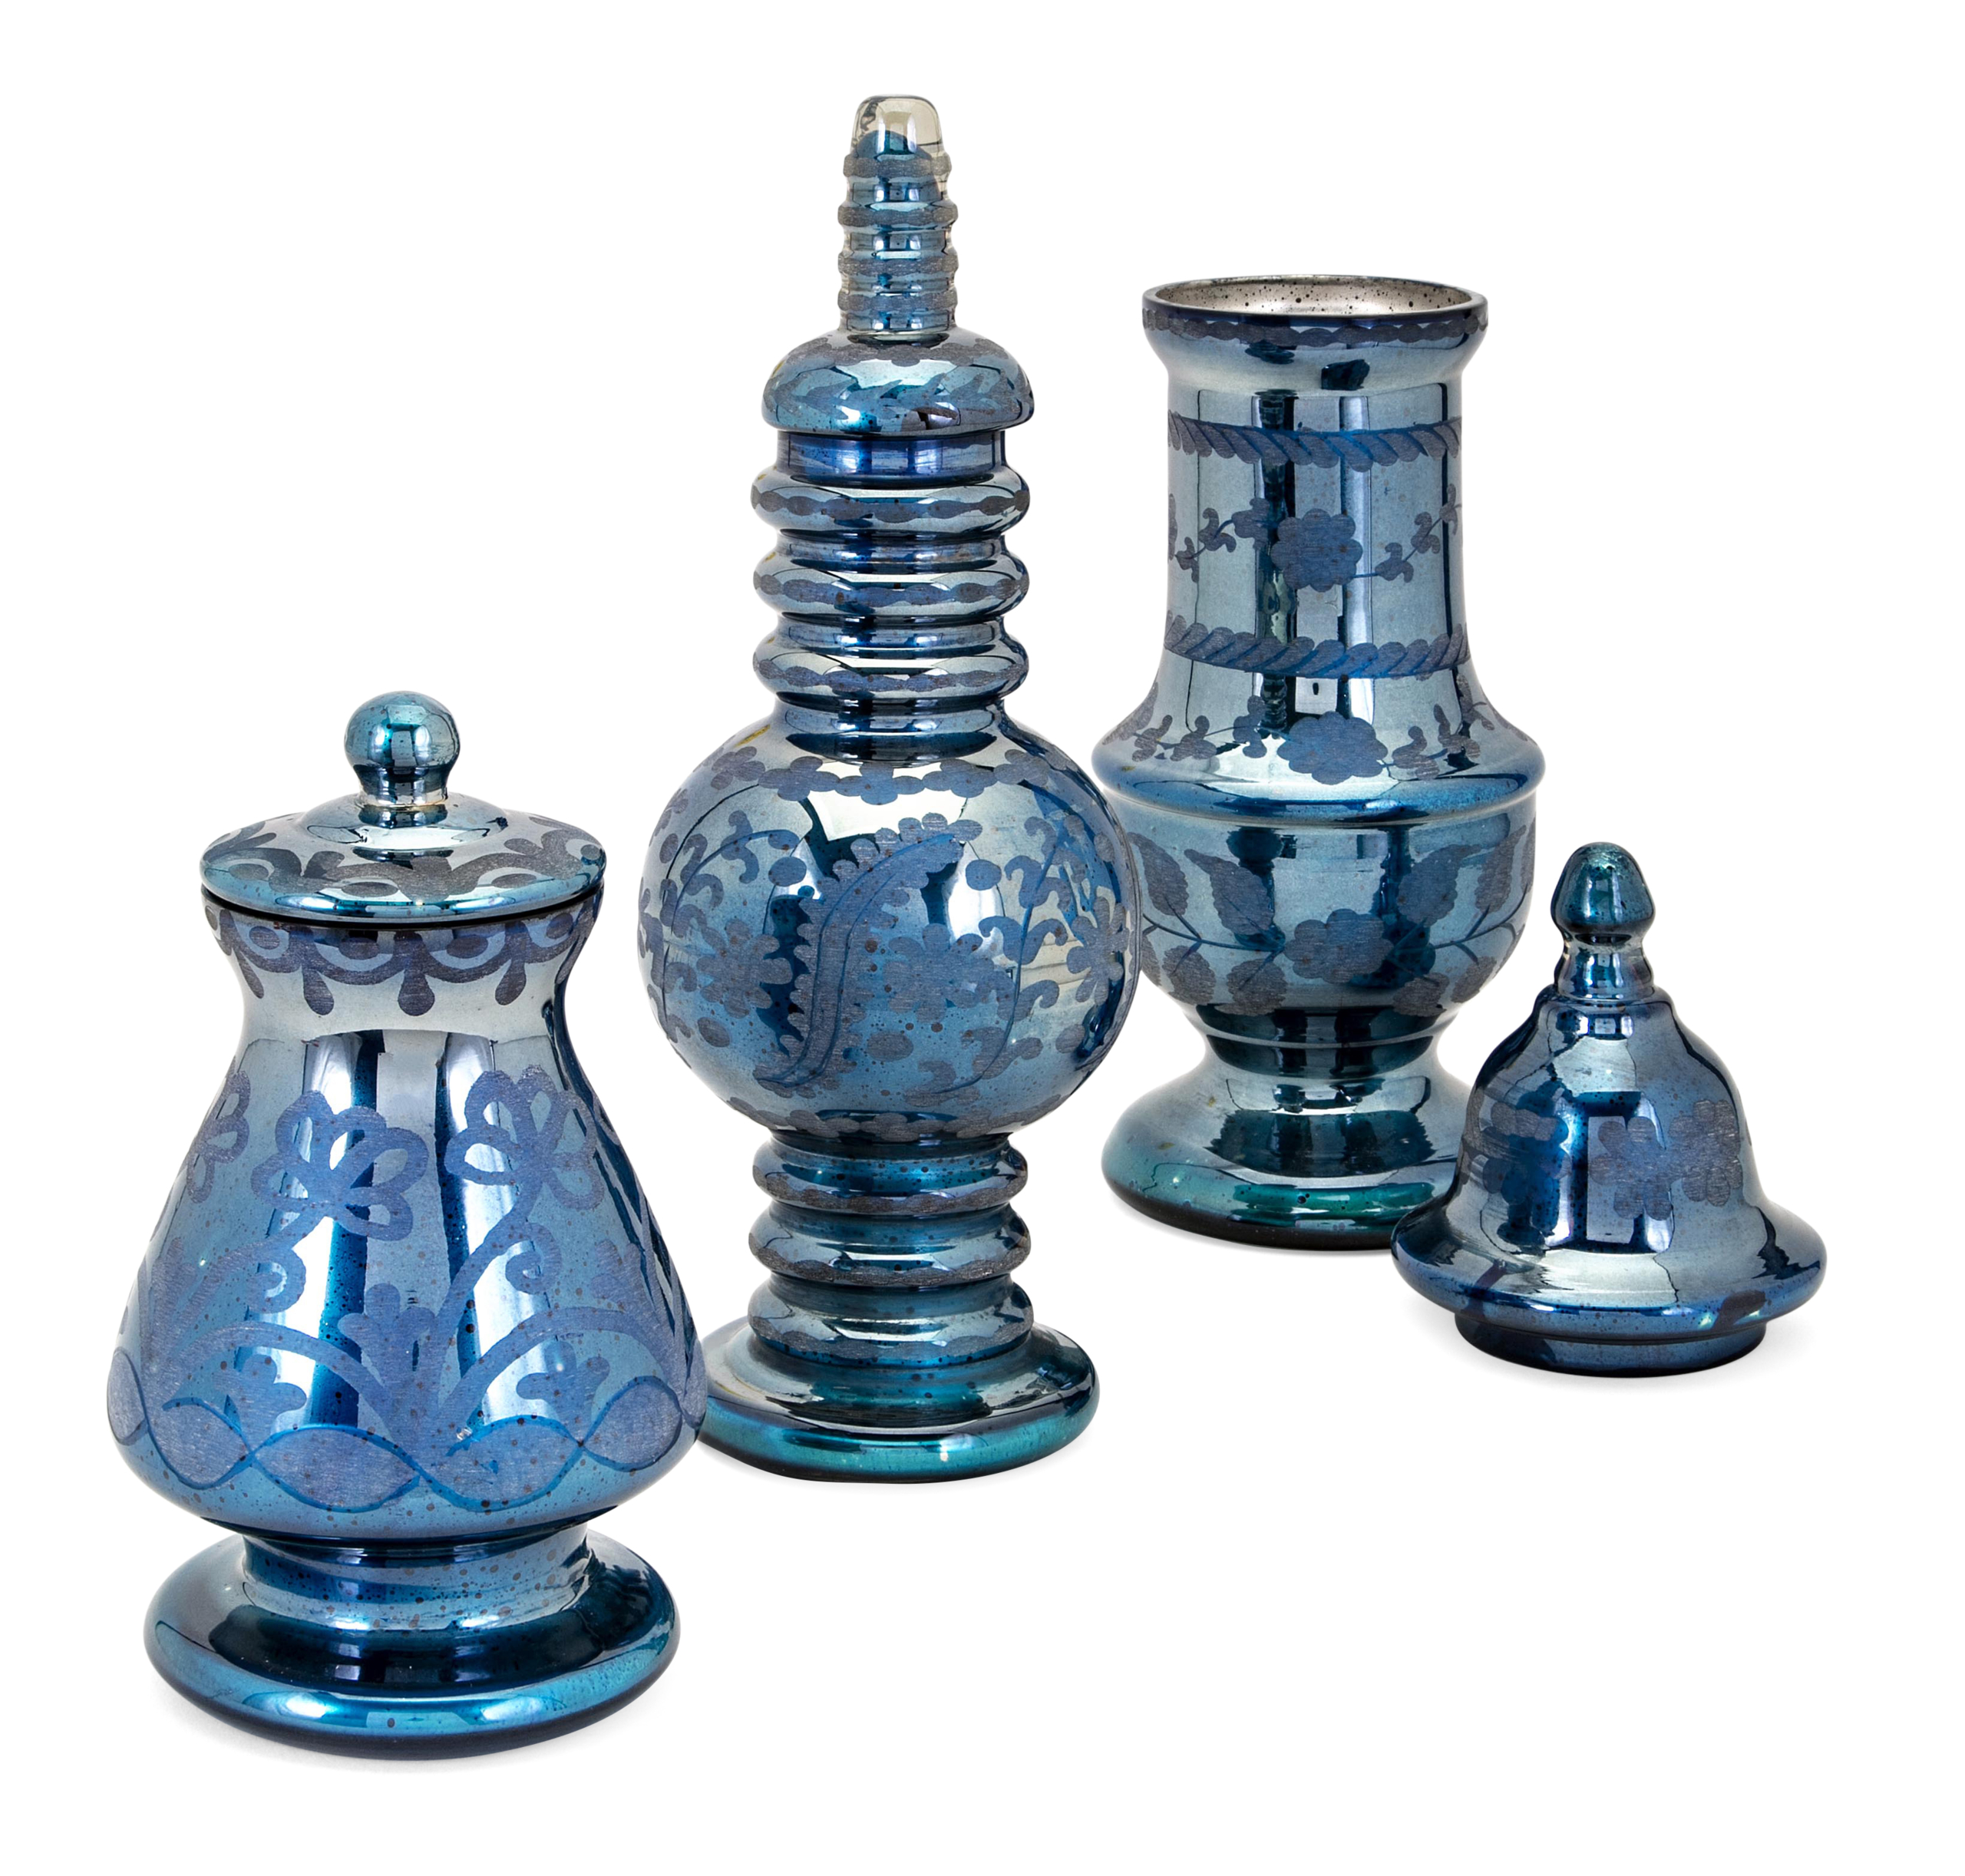 Marsha Lidded 3 Piece Decorative Jar Set